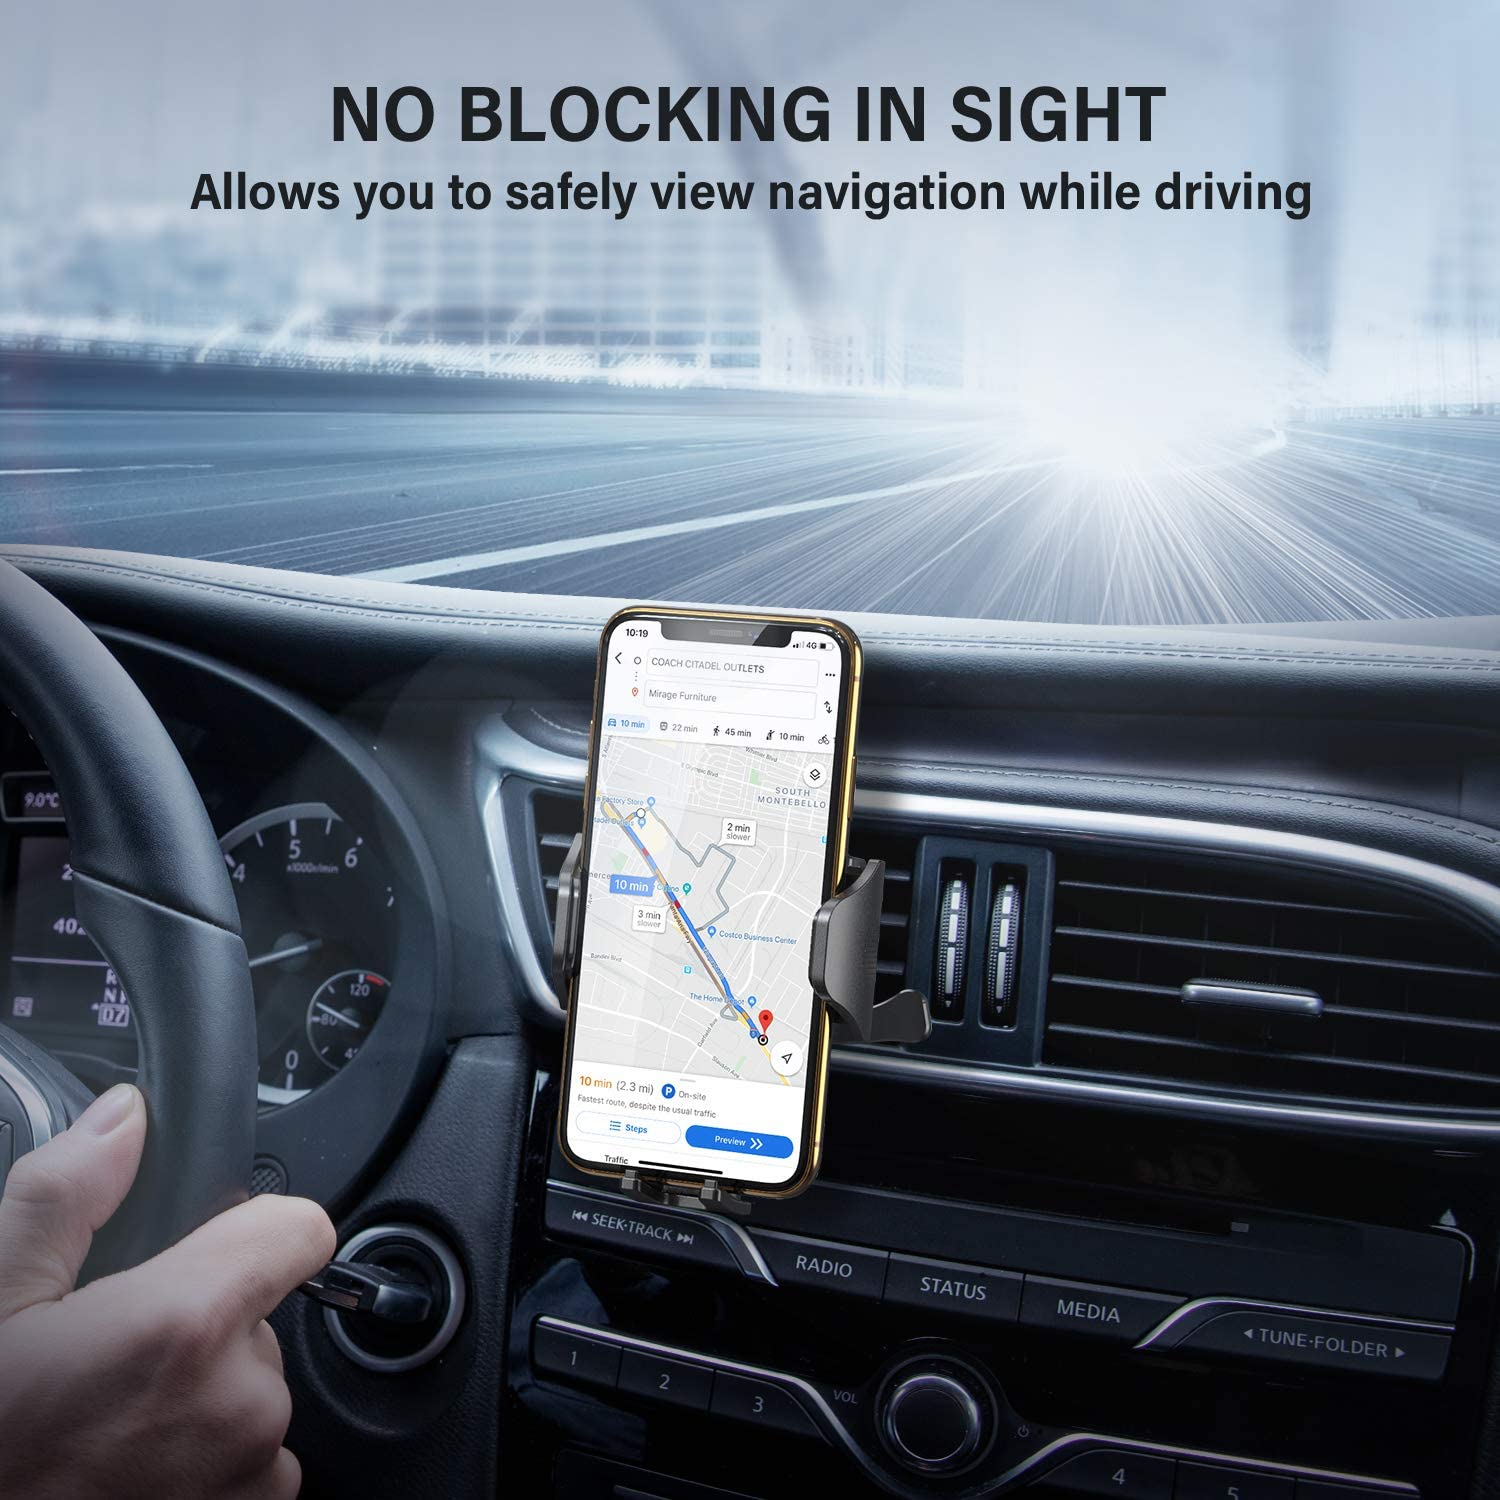 S10e S9 S8 S7 and More Samsung Galaxy S10 S10 DesertWest Air Vent Car Phone Mount Hassle-free Cell Phone Holder Universal Compatible with iPhone 11 Pro X XS Max XR 8 7 6+